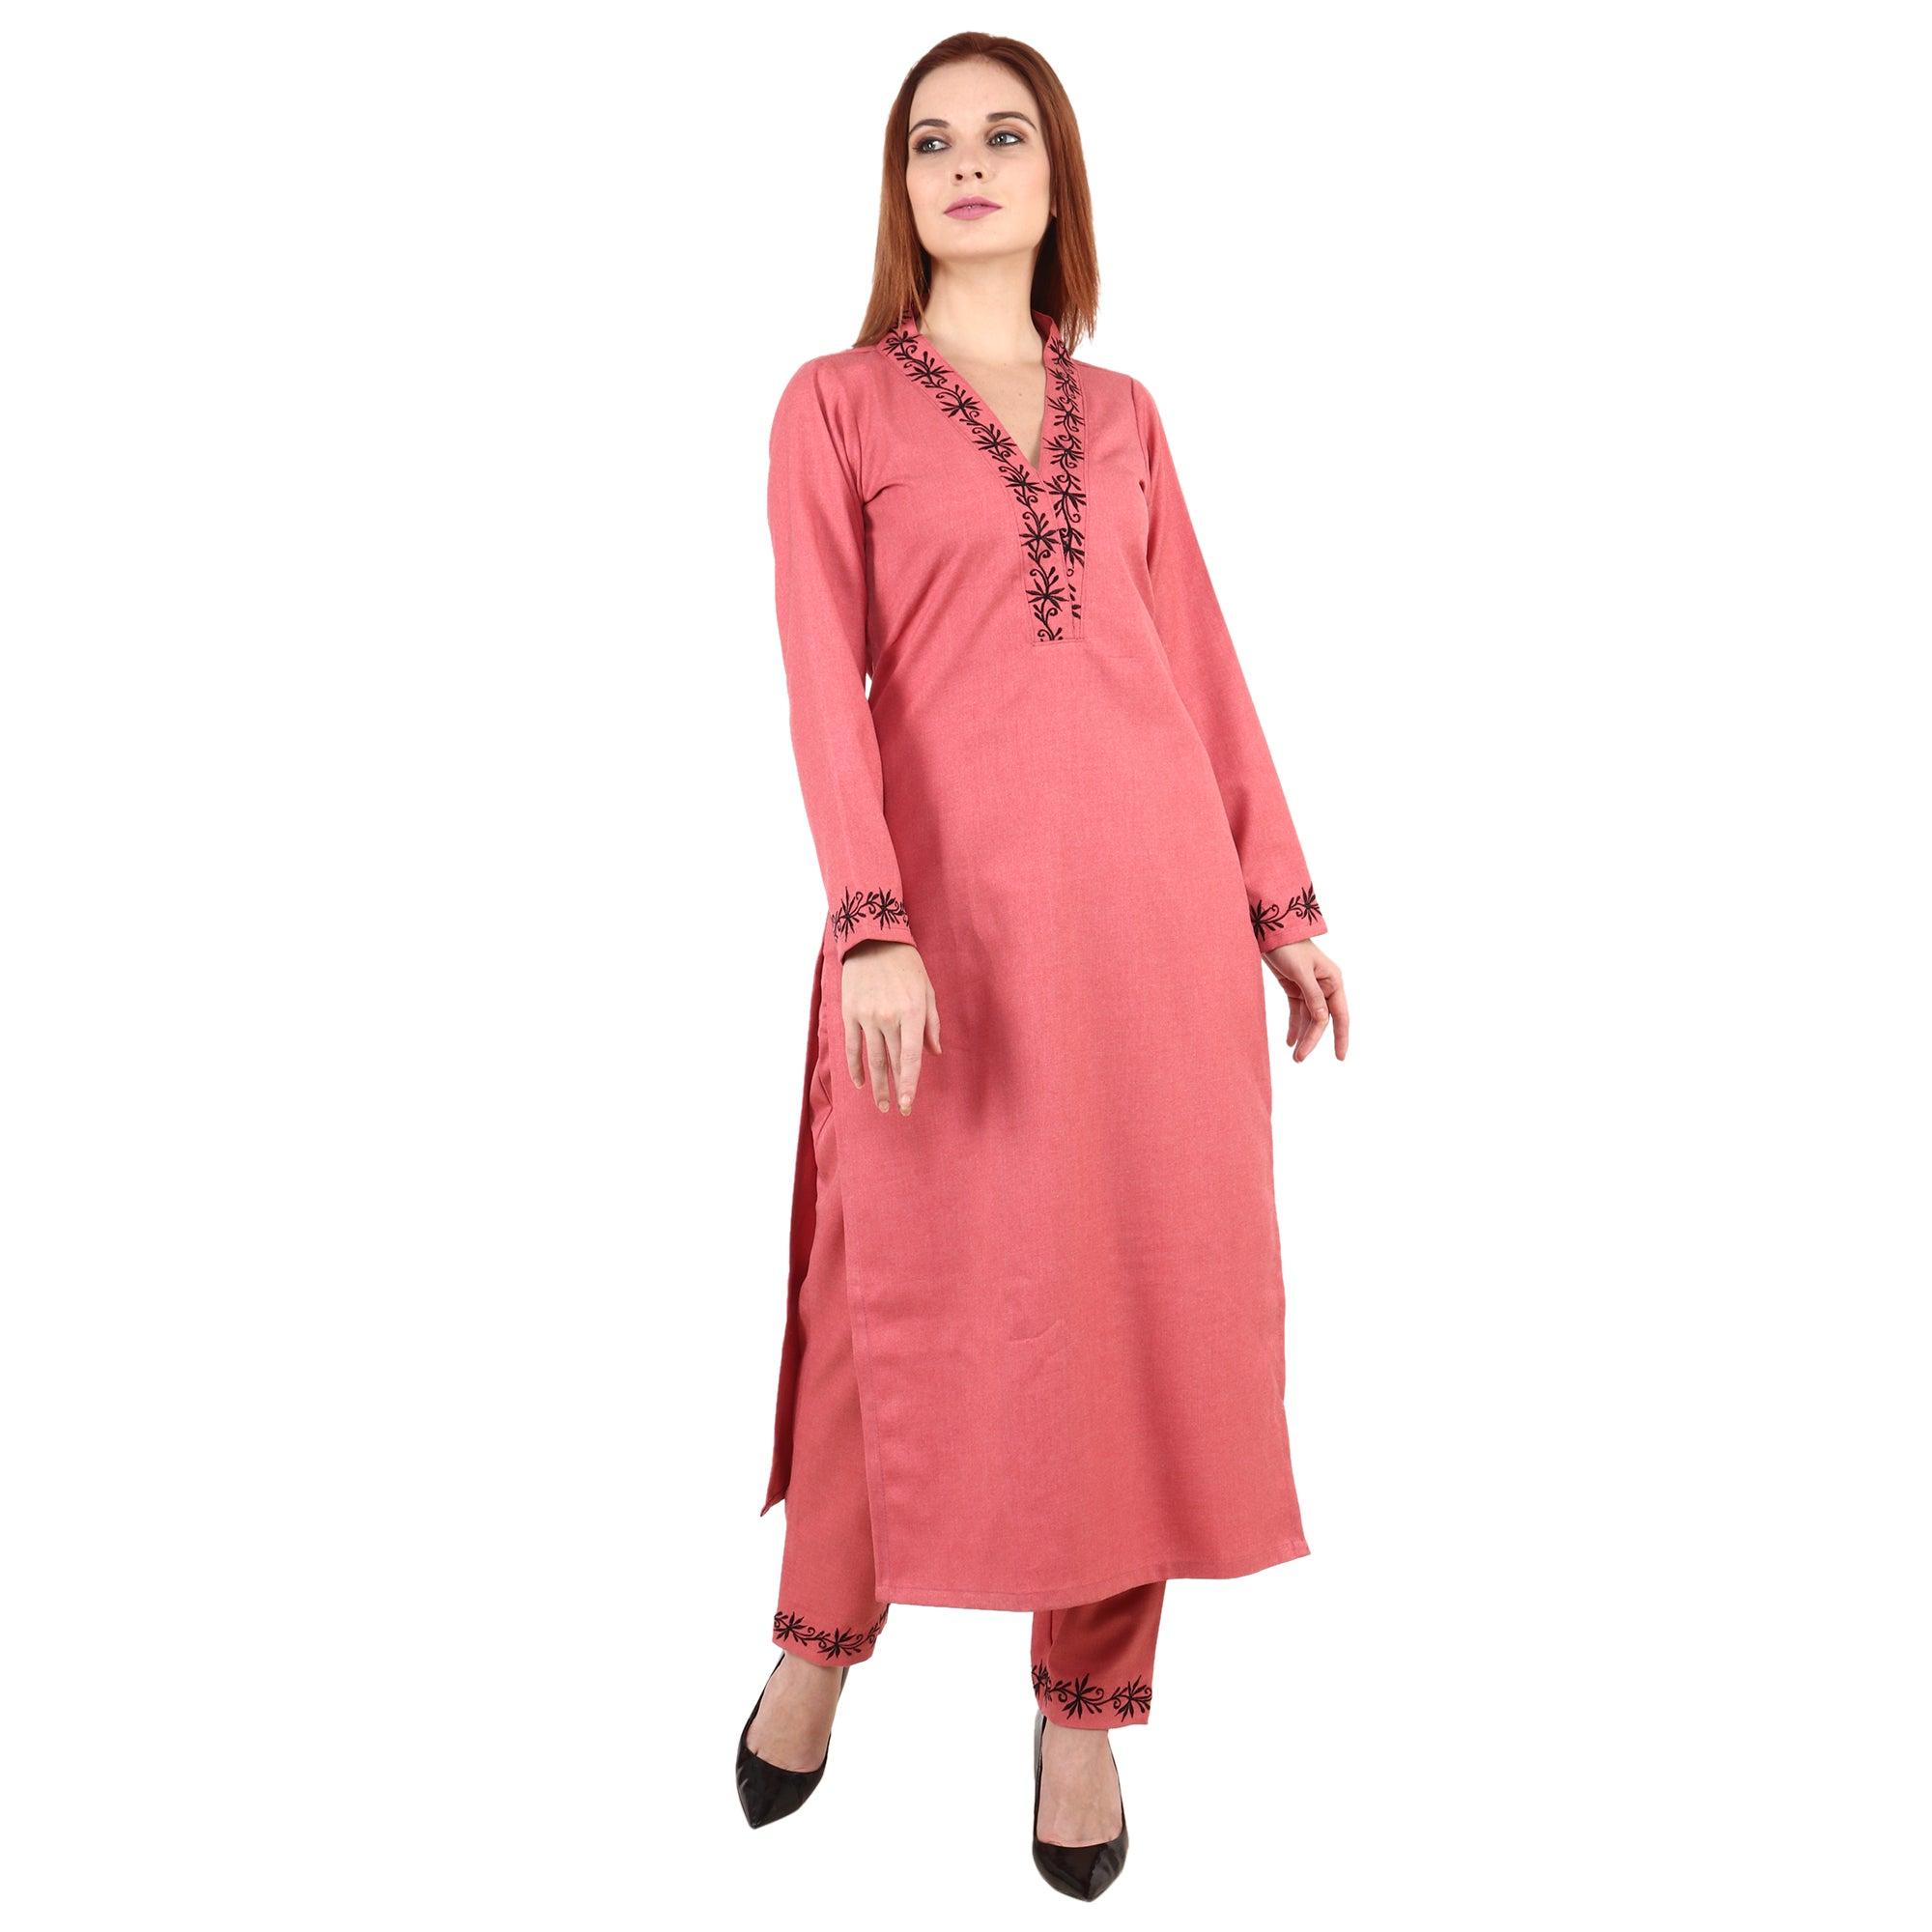 3/4 QUARTER SLEEVES, apella, COFFEE, kurta online, kurtas online, kurti, kurtis online, MANDARIAN, plus size. all sizes, reasonale price, WINTER KURTI, WINTER WEAR